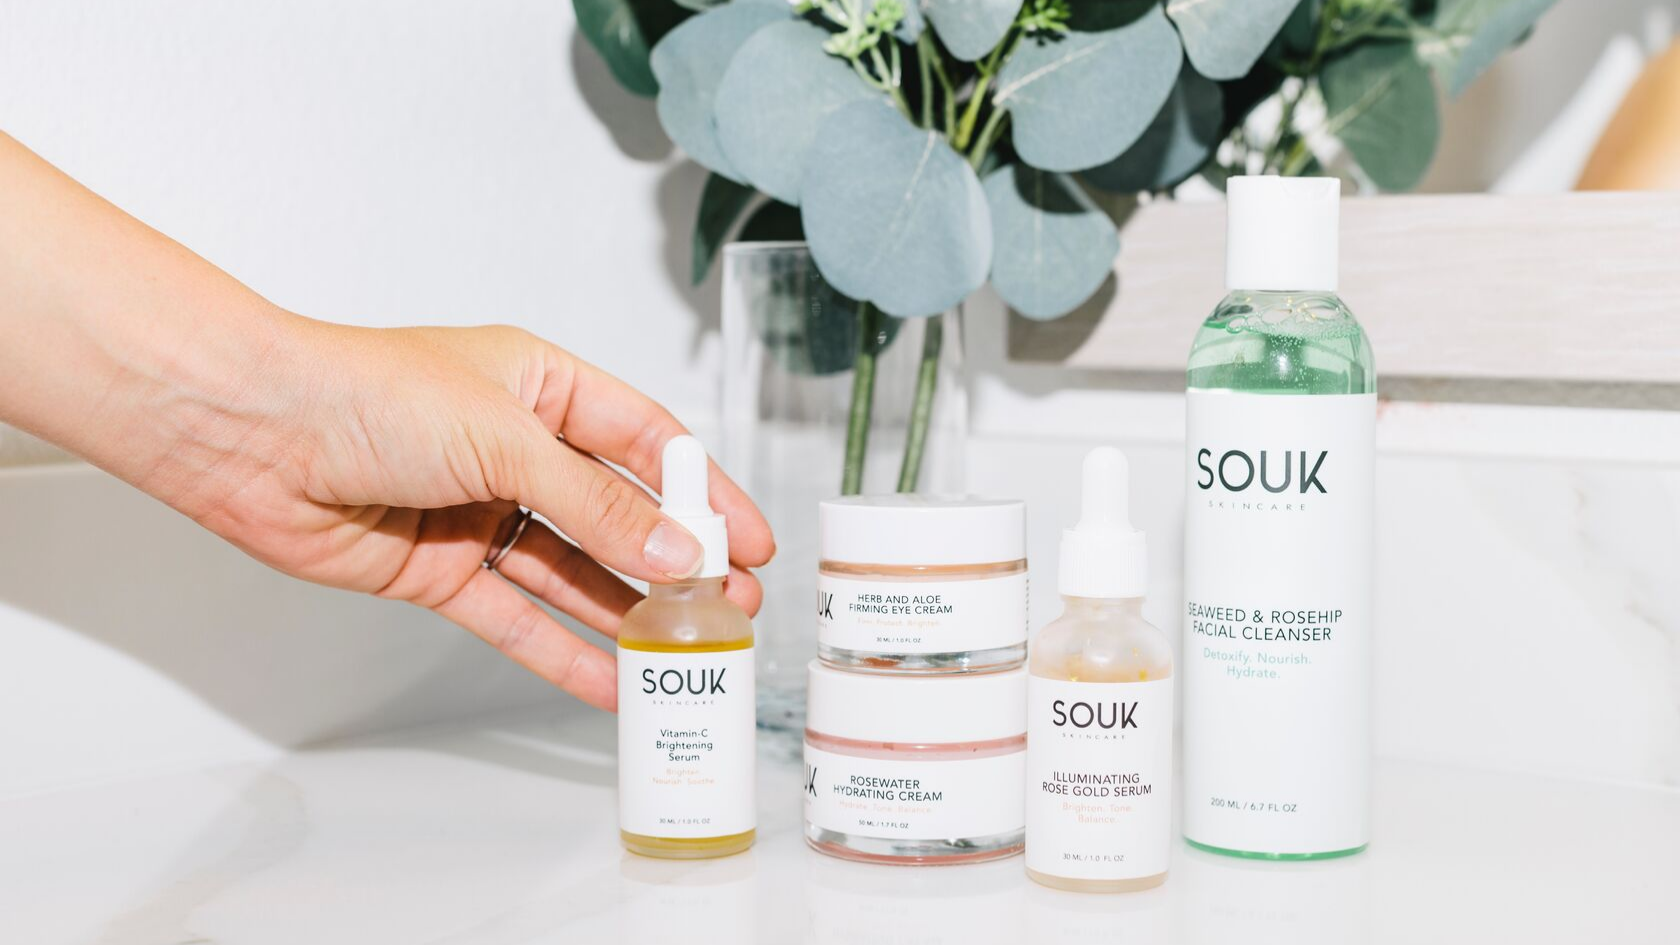 The The S's of Skincare: Sun, Stress & Sugar by SOUK Skincare